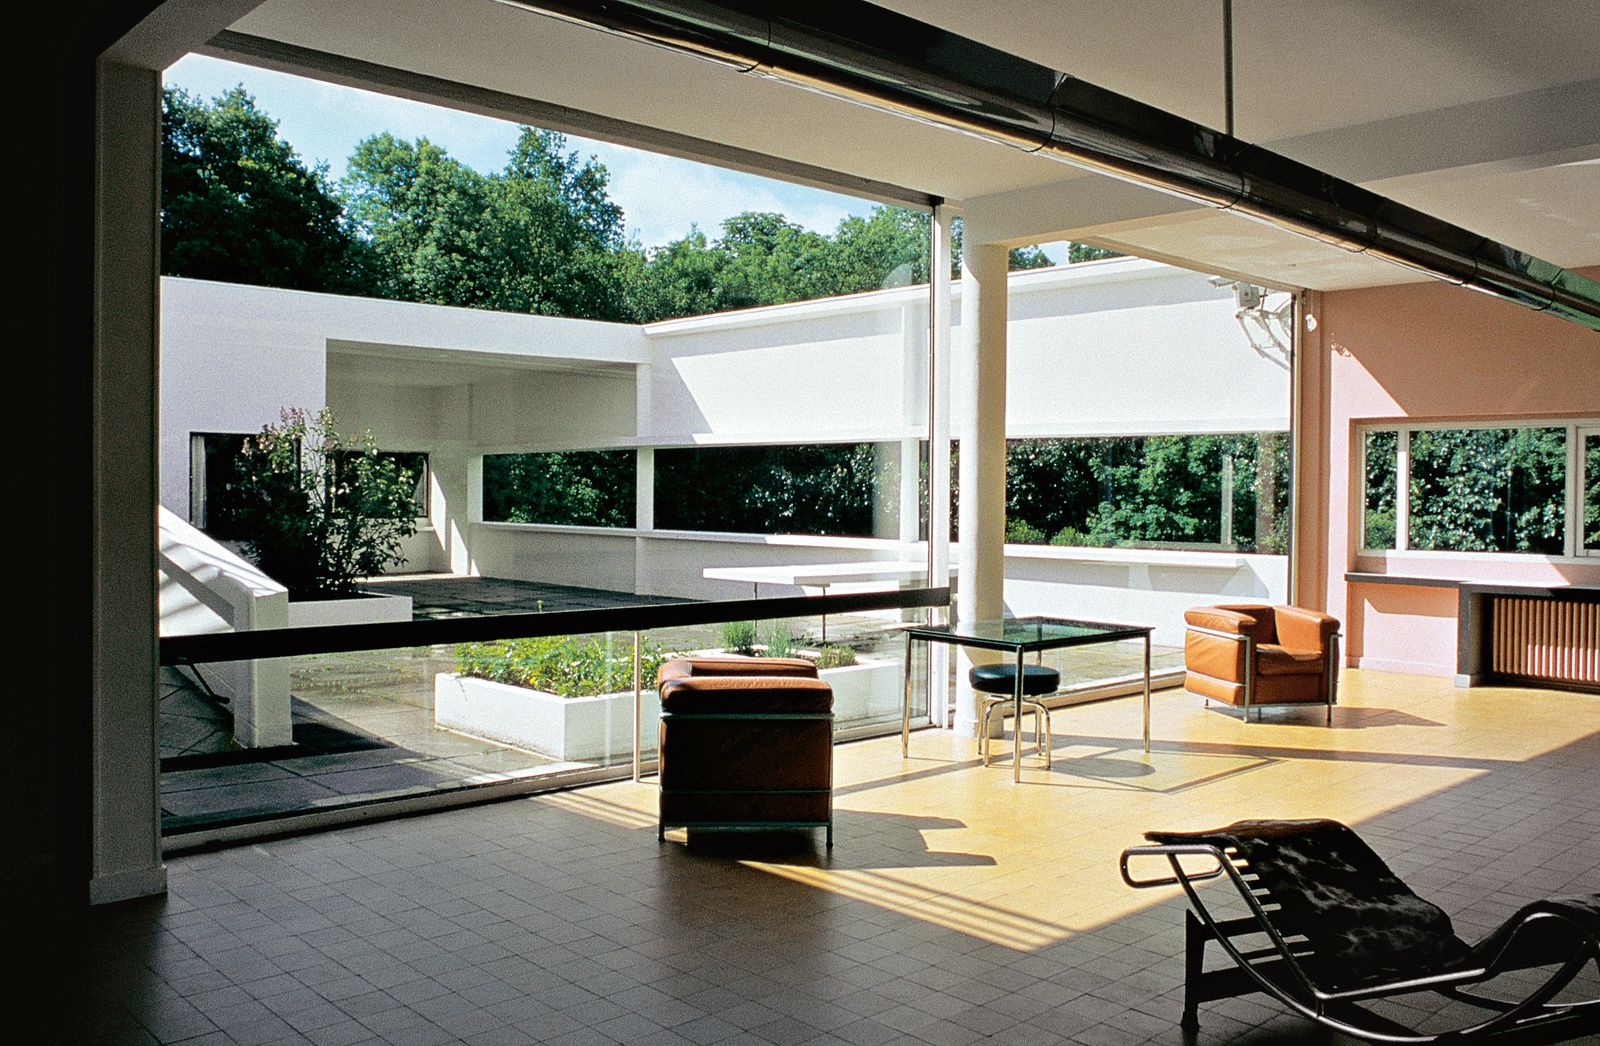 Le corbusier p re de l 39 architecture moderne france 39 in d co for L architecture moderne plan